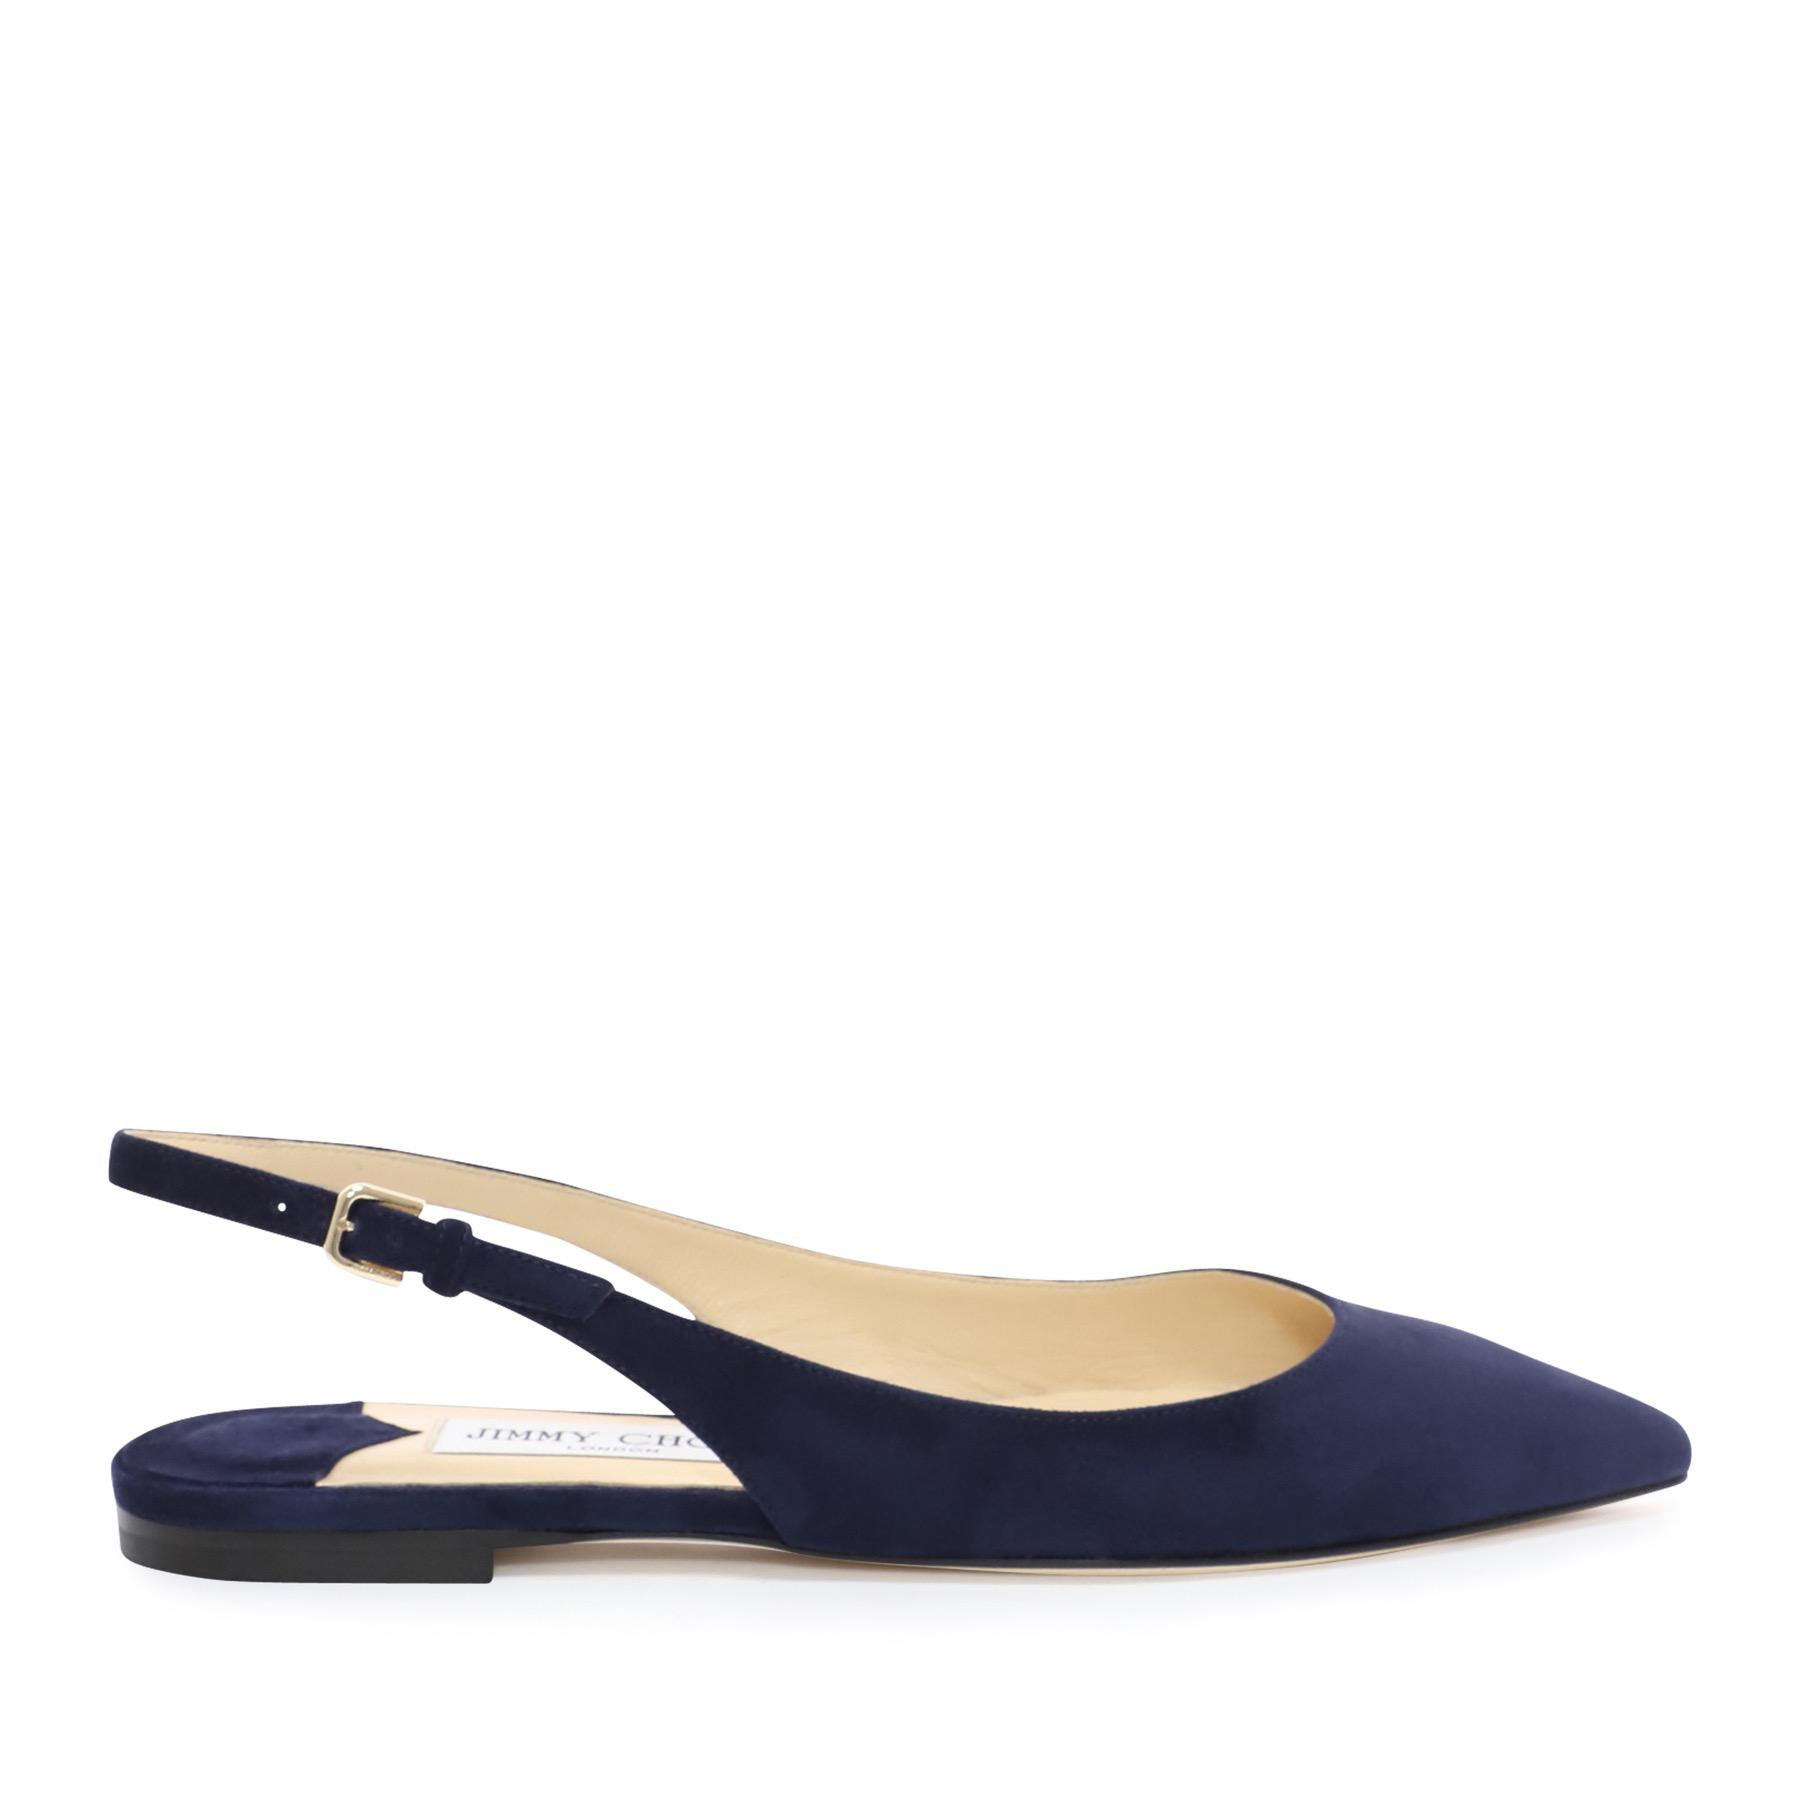 54fa4accd6 Jimmy Choo Erin Suede Slingback Point-toe Flats in Blue - Save 12 ...